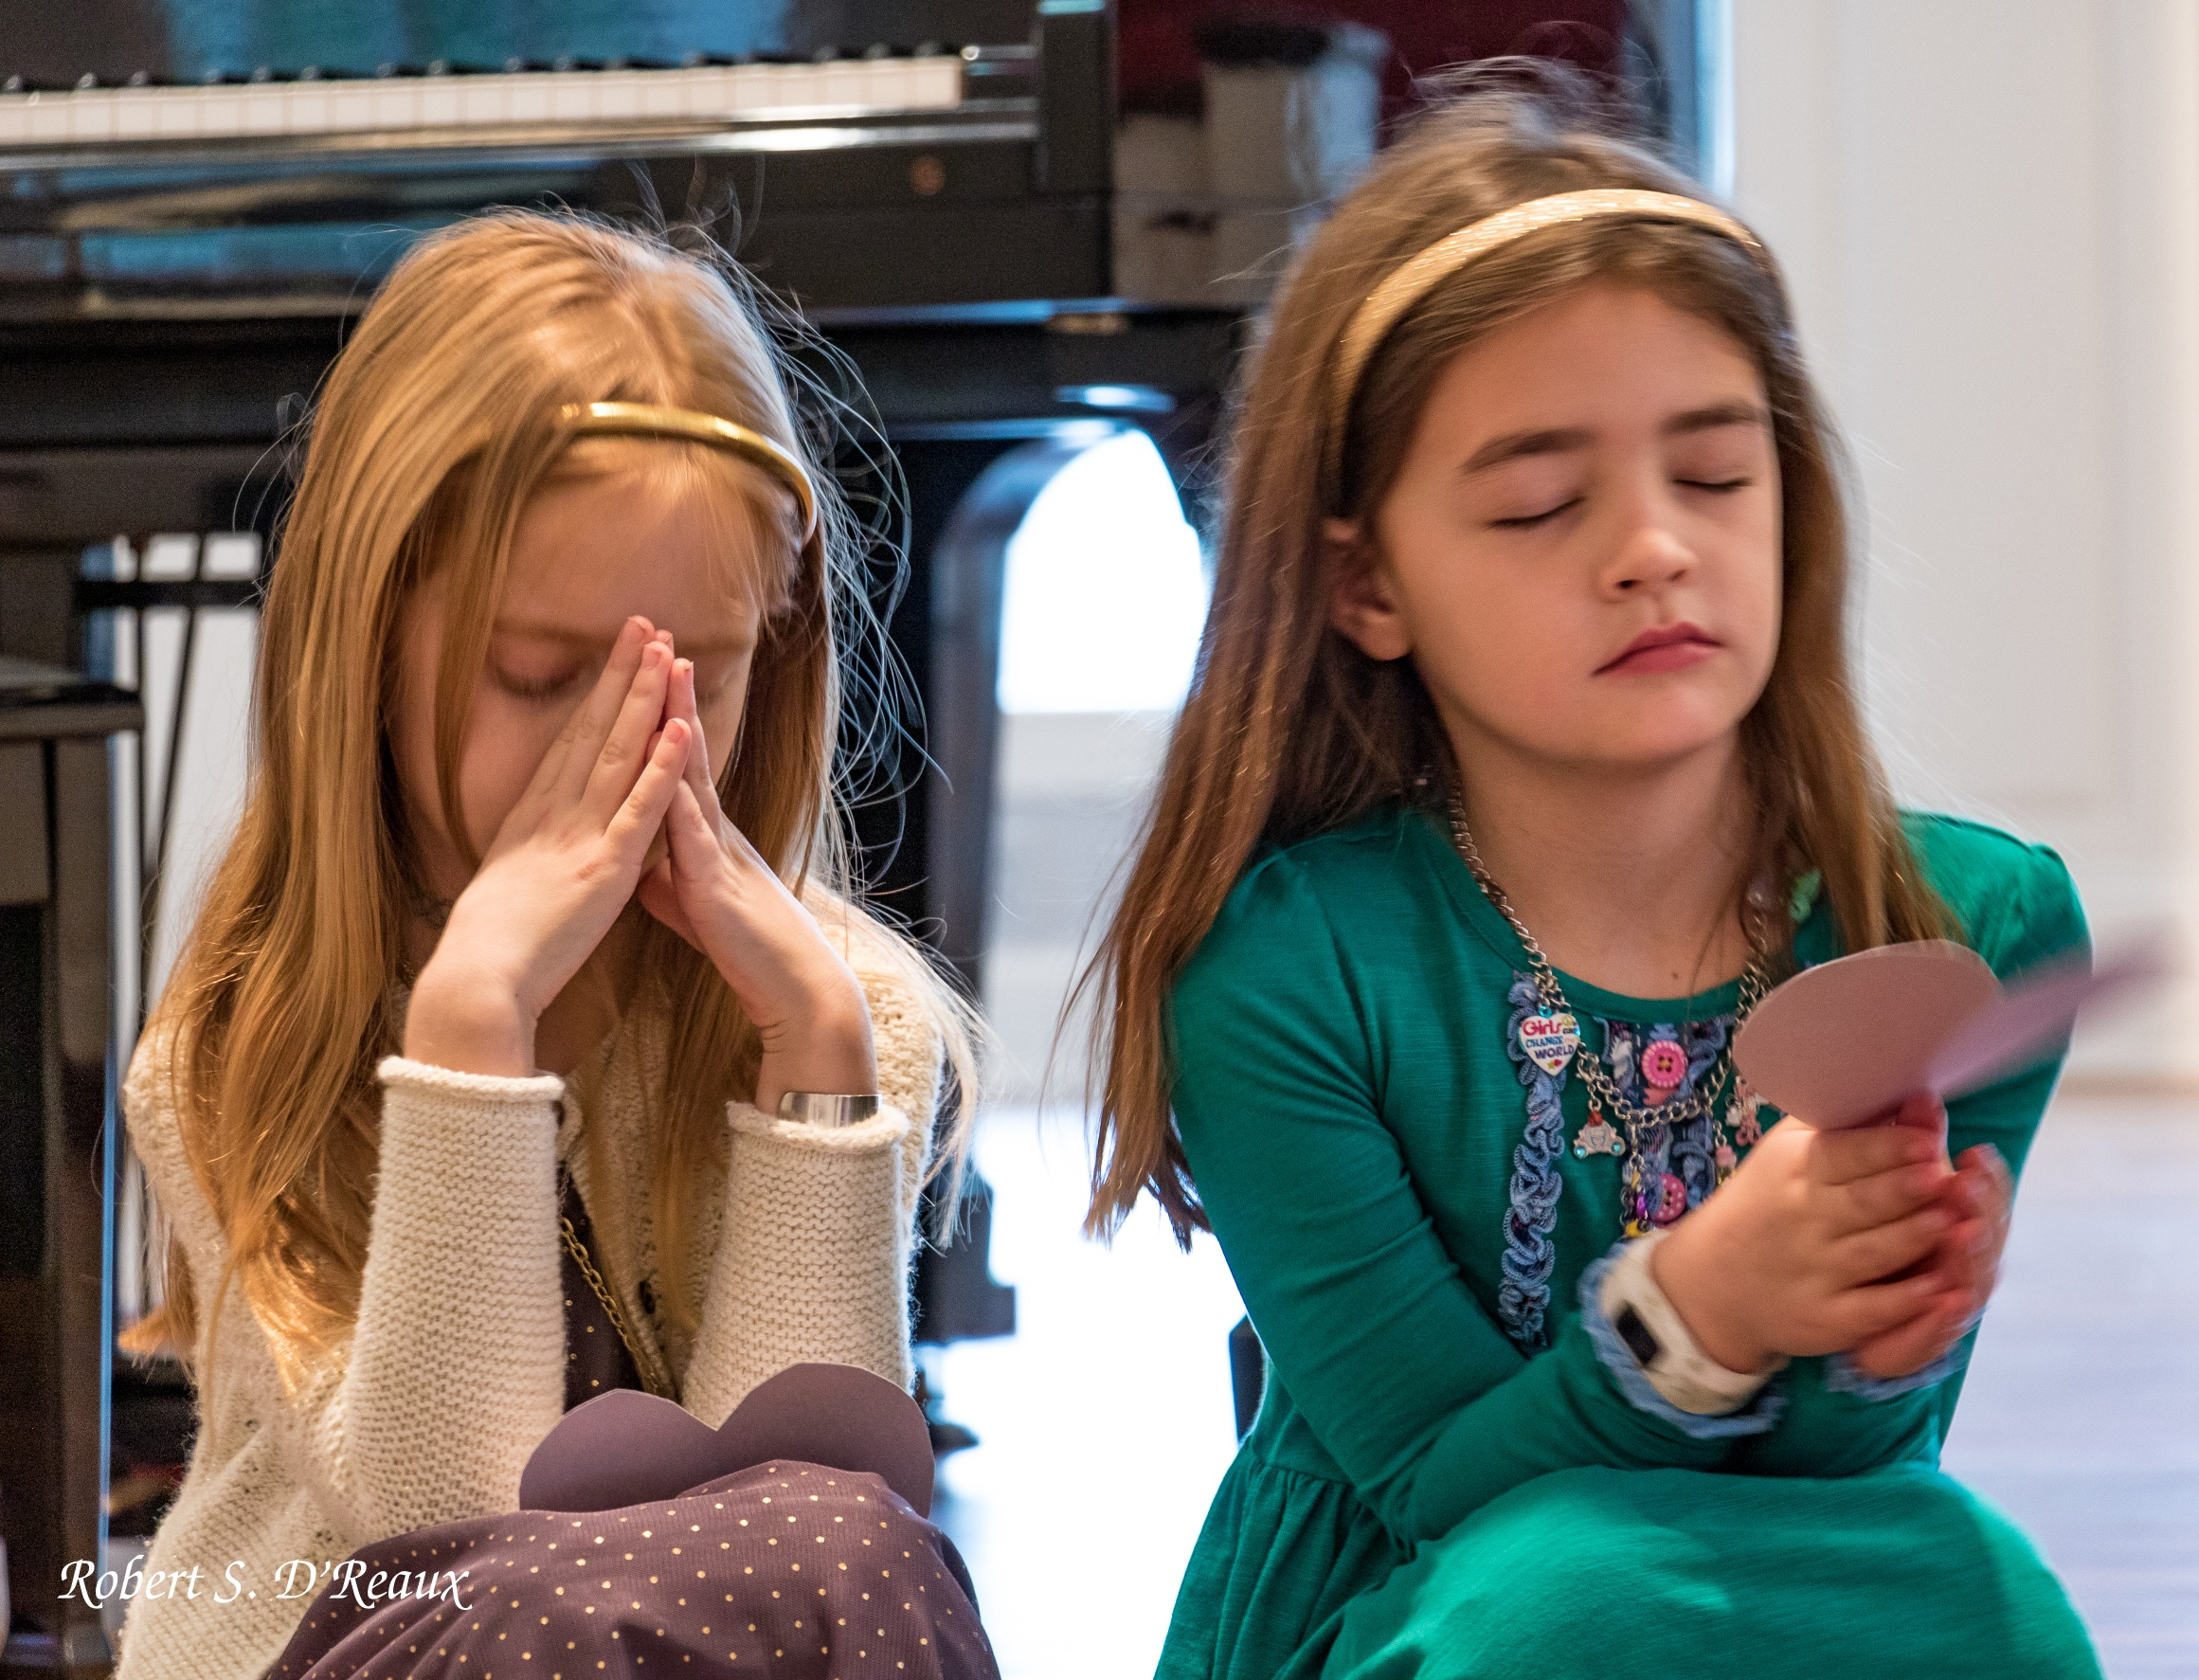 Girls Praying at Worship